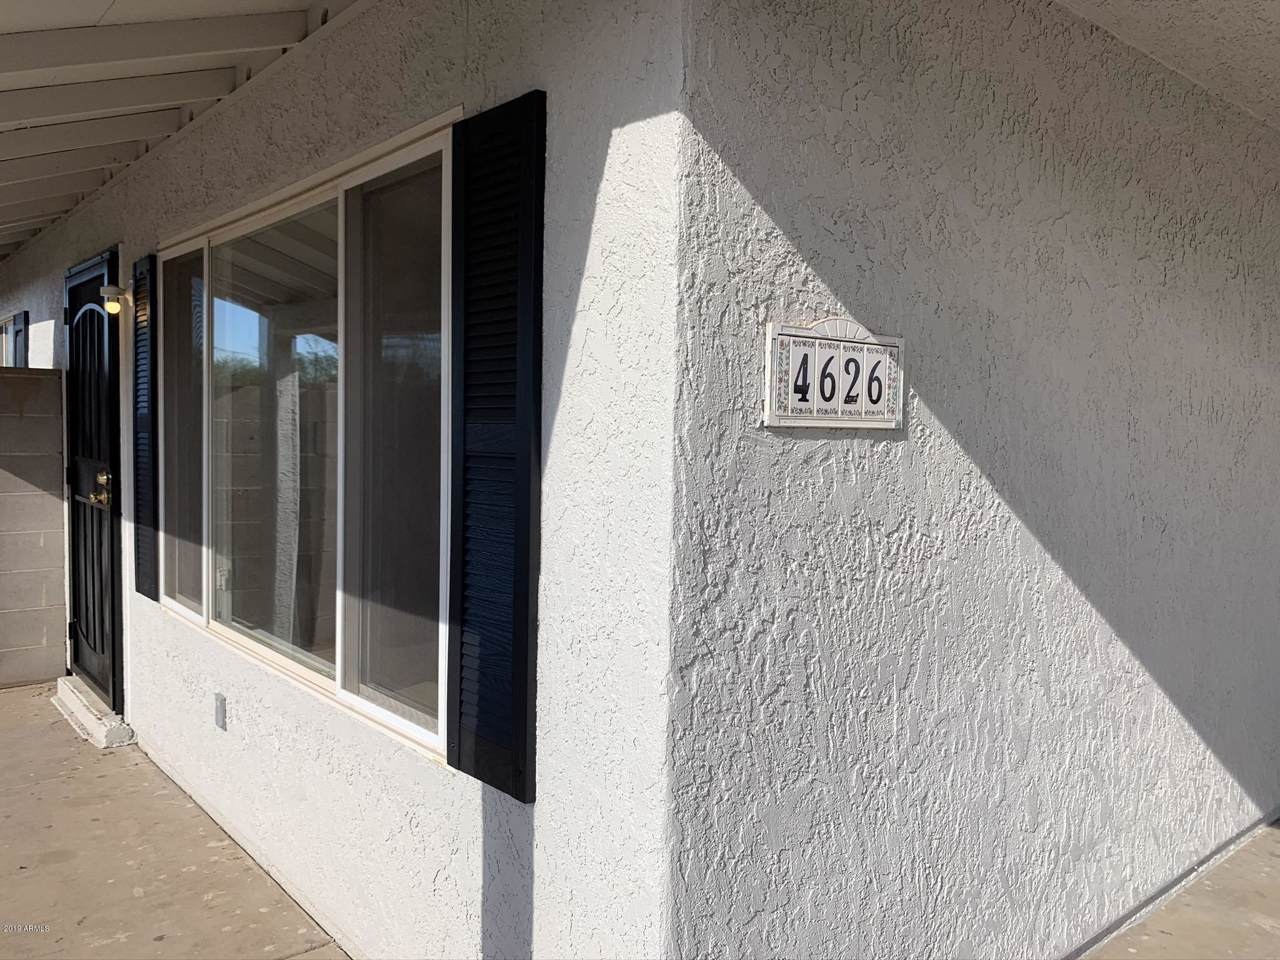 https://bt-photos.global.ssl.fastly.net/armls/1280_boomver_1_6014643-2.jpg